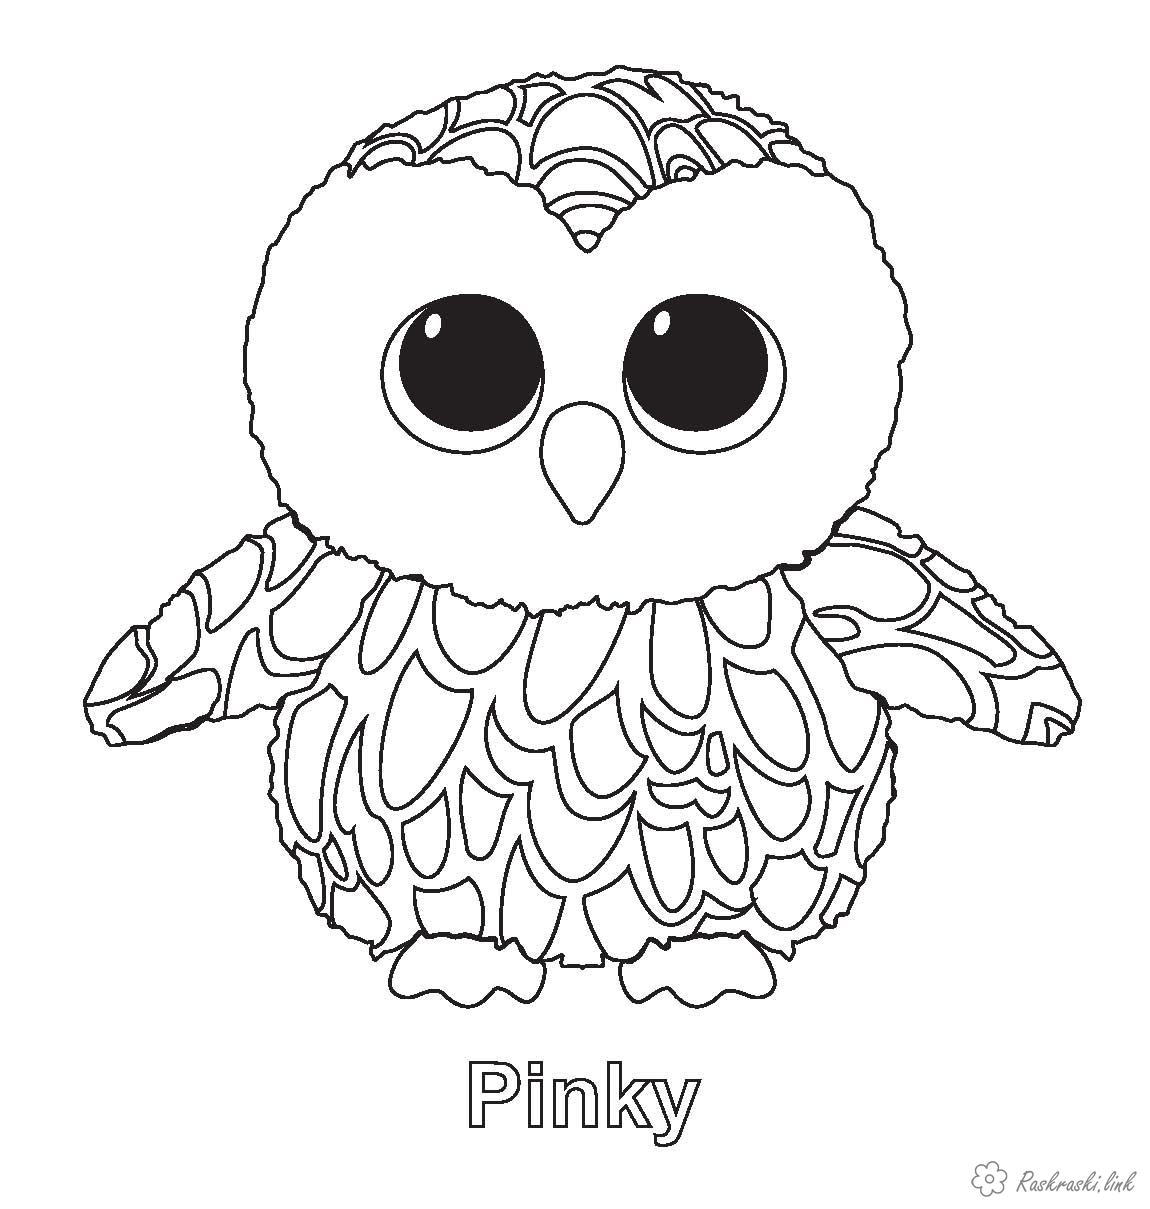 Coloring Forest animals nature forest animals bird owl owlet